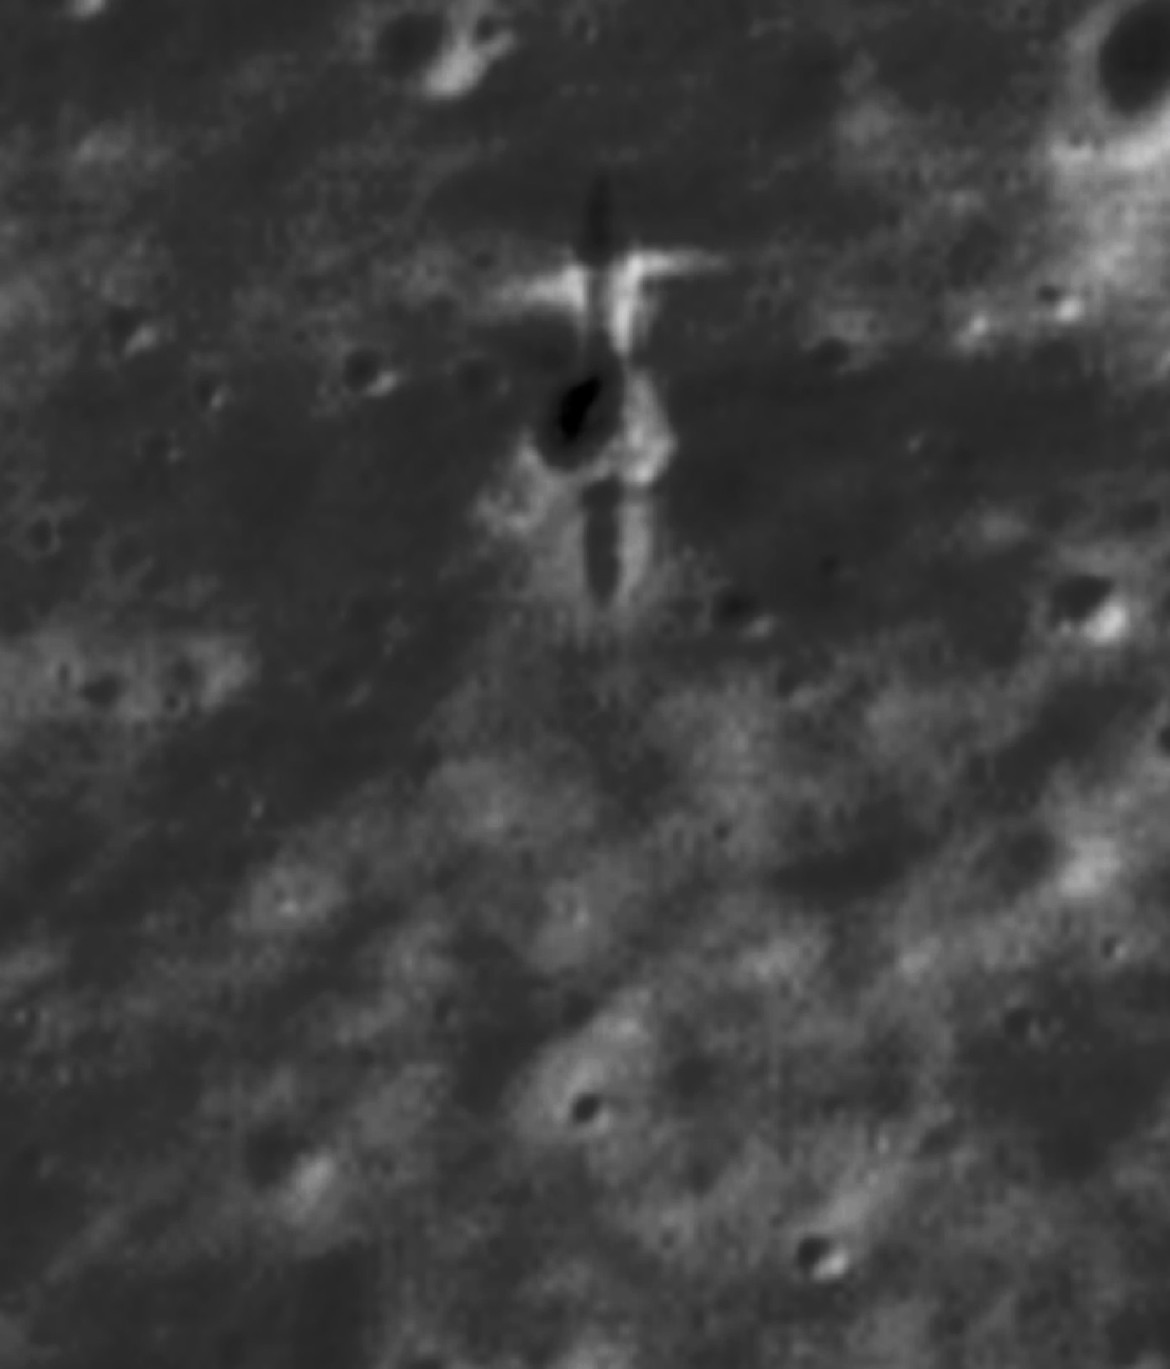 The impact site of SMART-1 observed by LRO. The Sun was to the west (left), so the crater's and gouge's right sides are illuminated. The image is about 50 meters wide. Credit: P. Stooke/B. Foing et al. 2017/ NASA/GSFC/Arizona State University